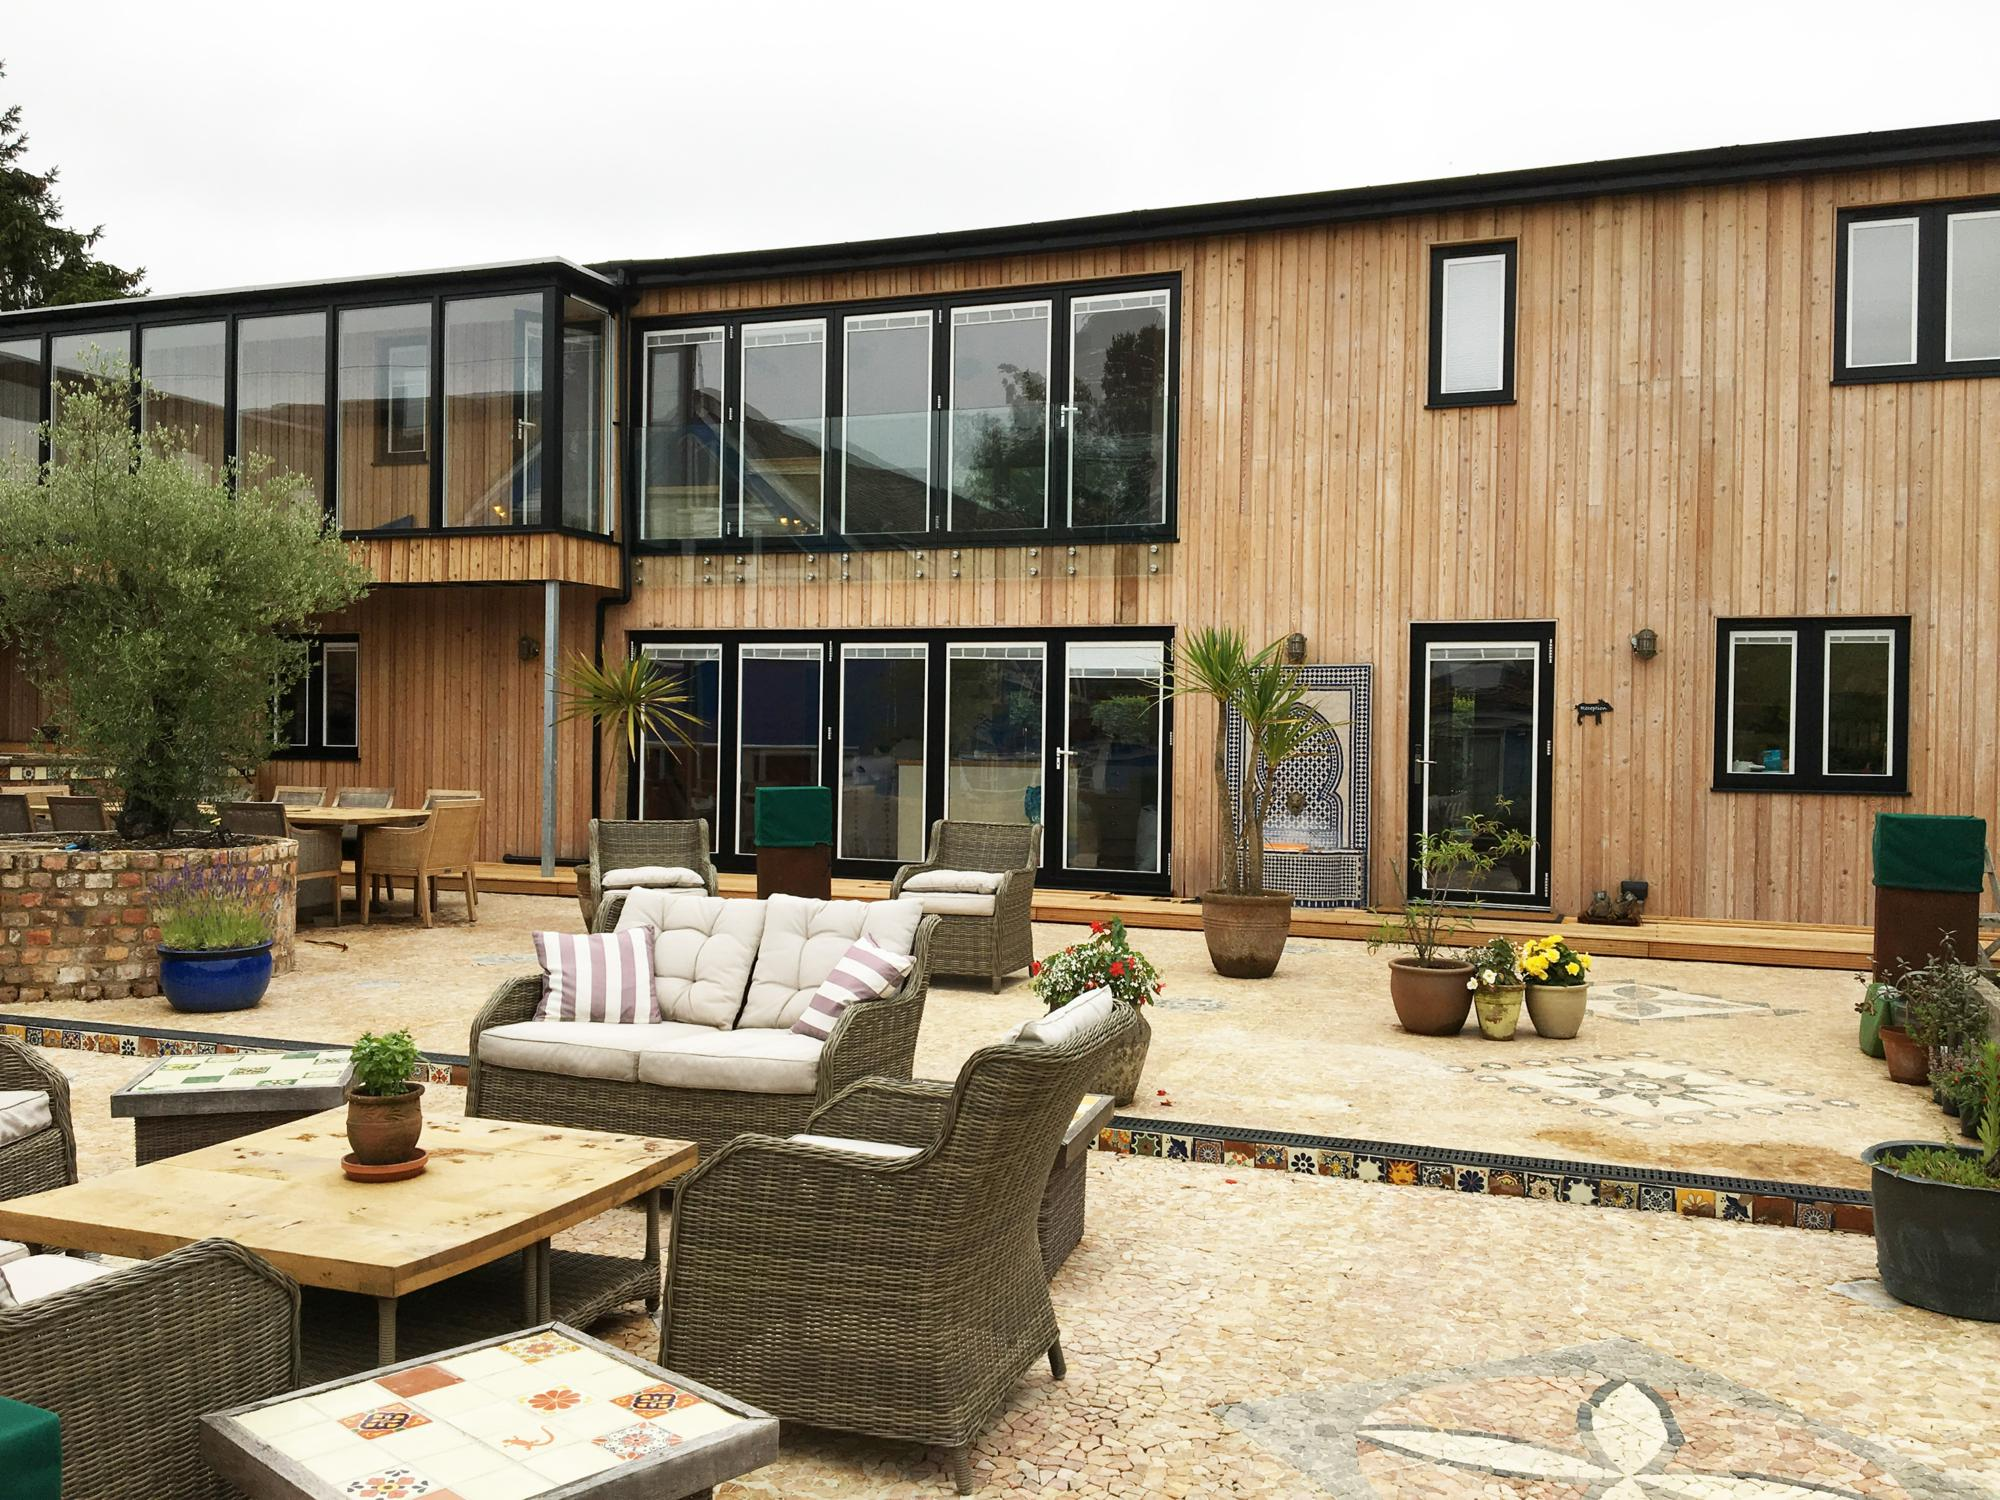 B&Bs in Essex holidays at Cool Places